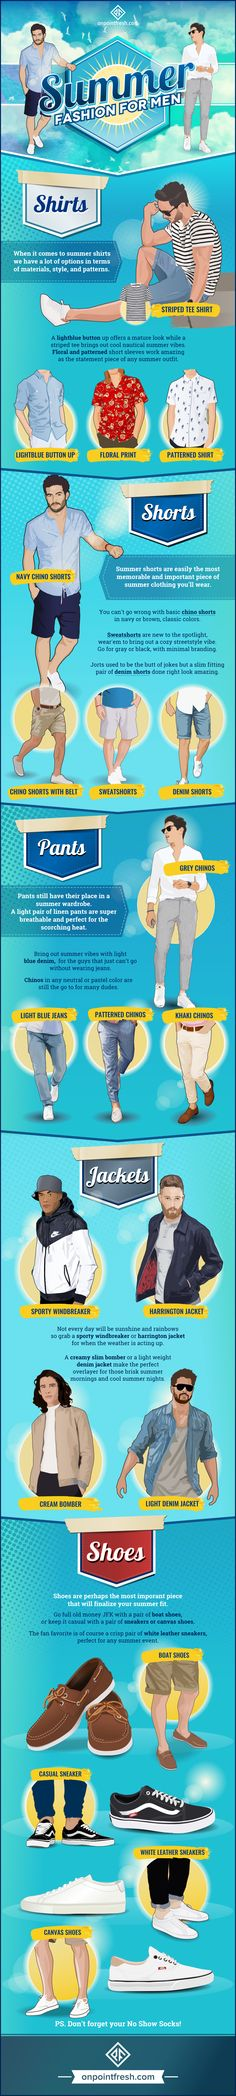 Visual Guide To Men's Summer Fashion - hope this helps you find your summer style!   Supernatural Sty